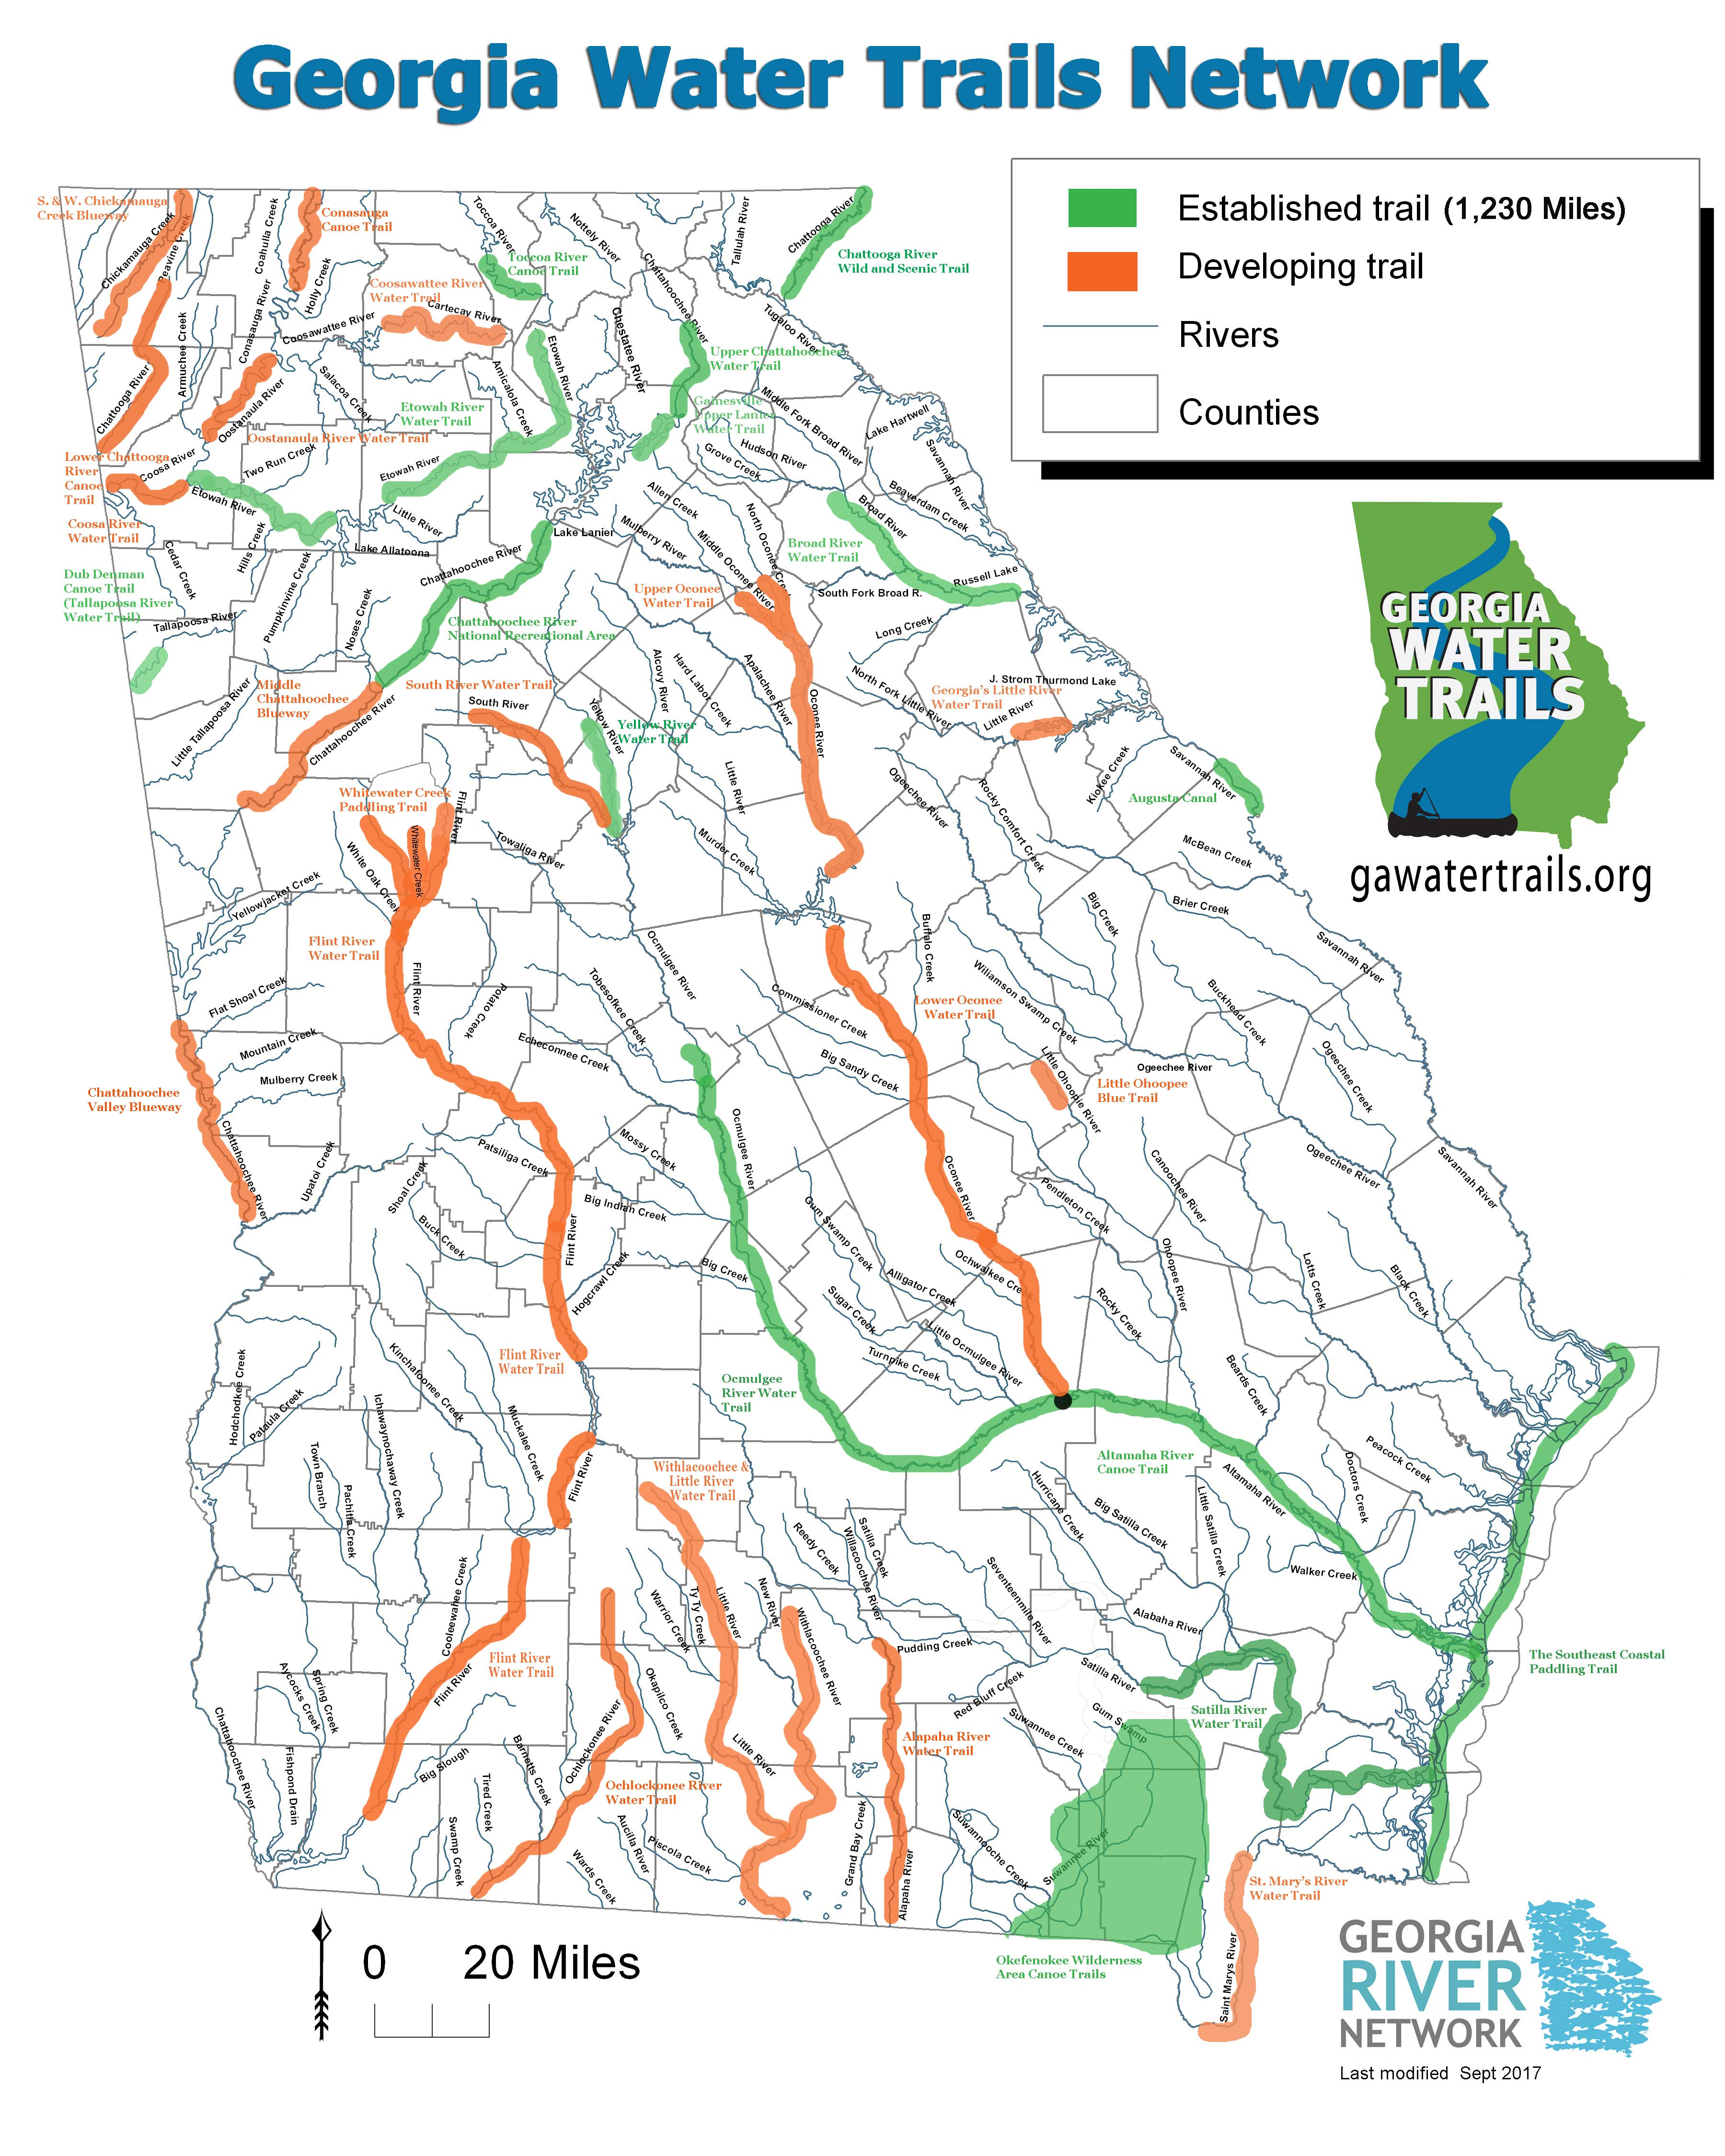 Gawatertrailsmapsept2017webg ga water trails map sept 2017small sciox Images